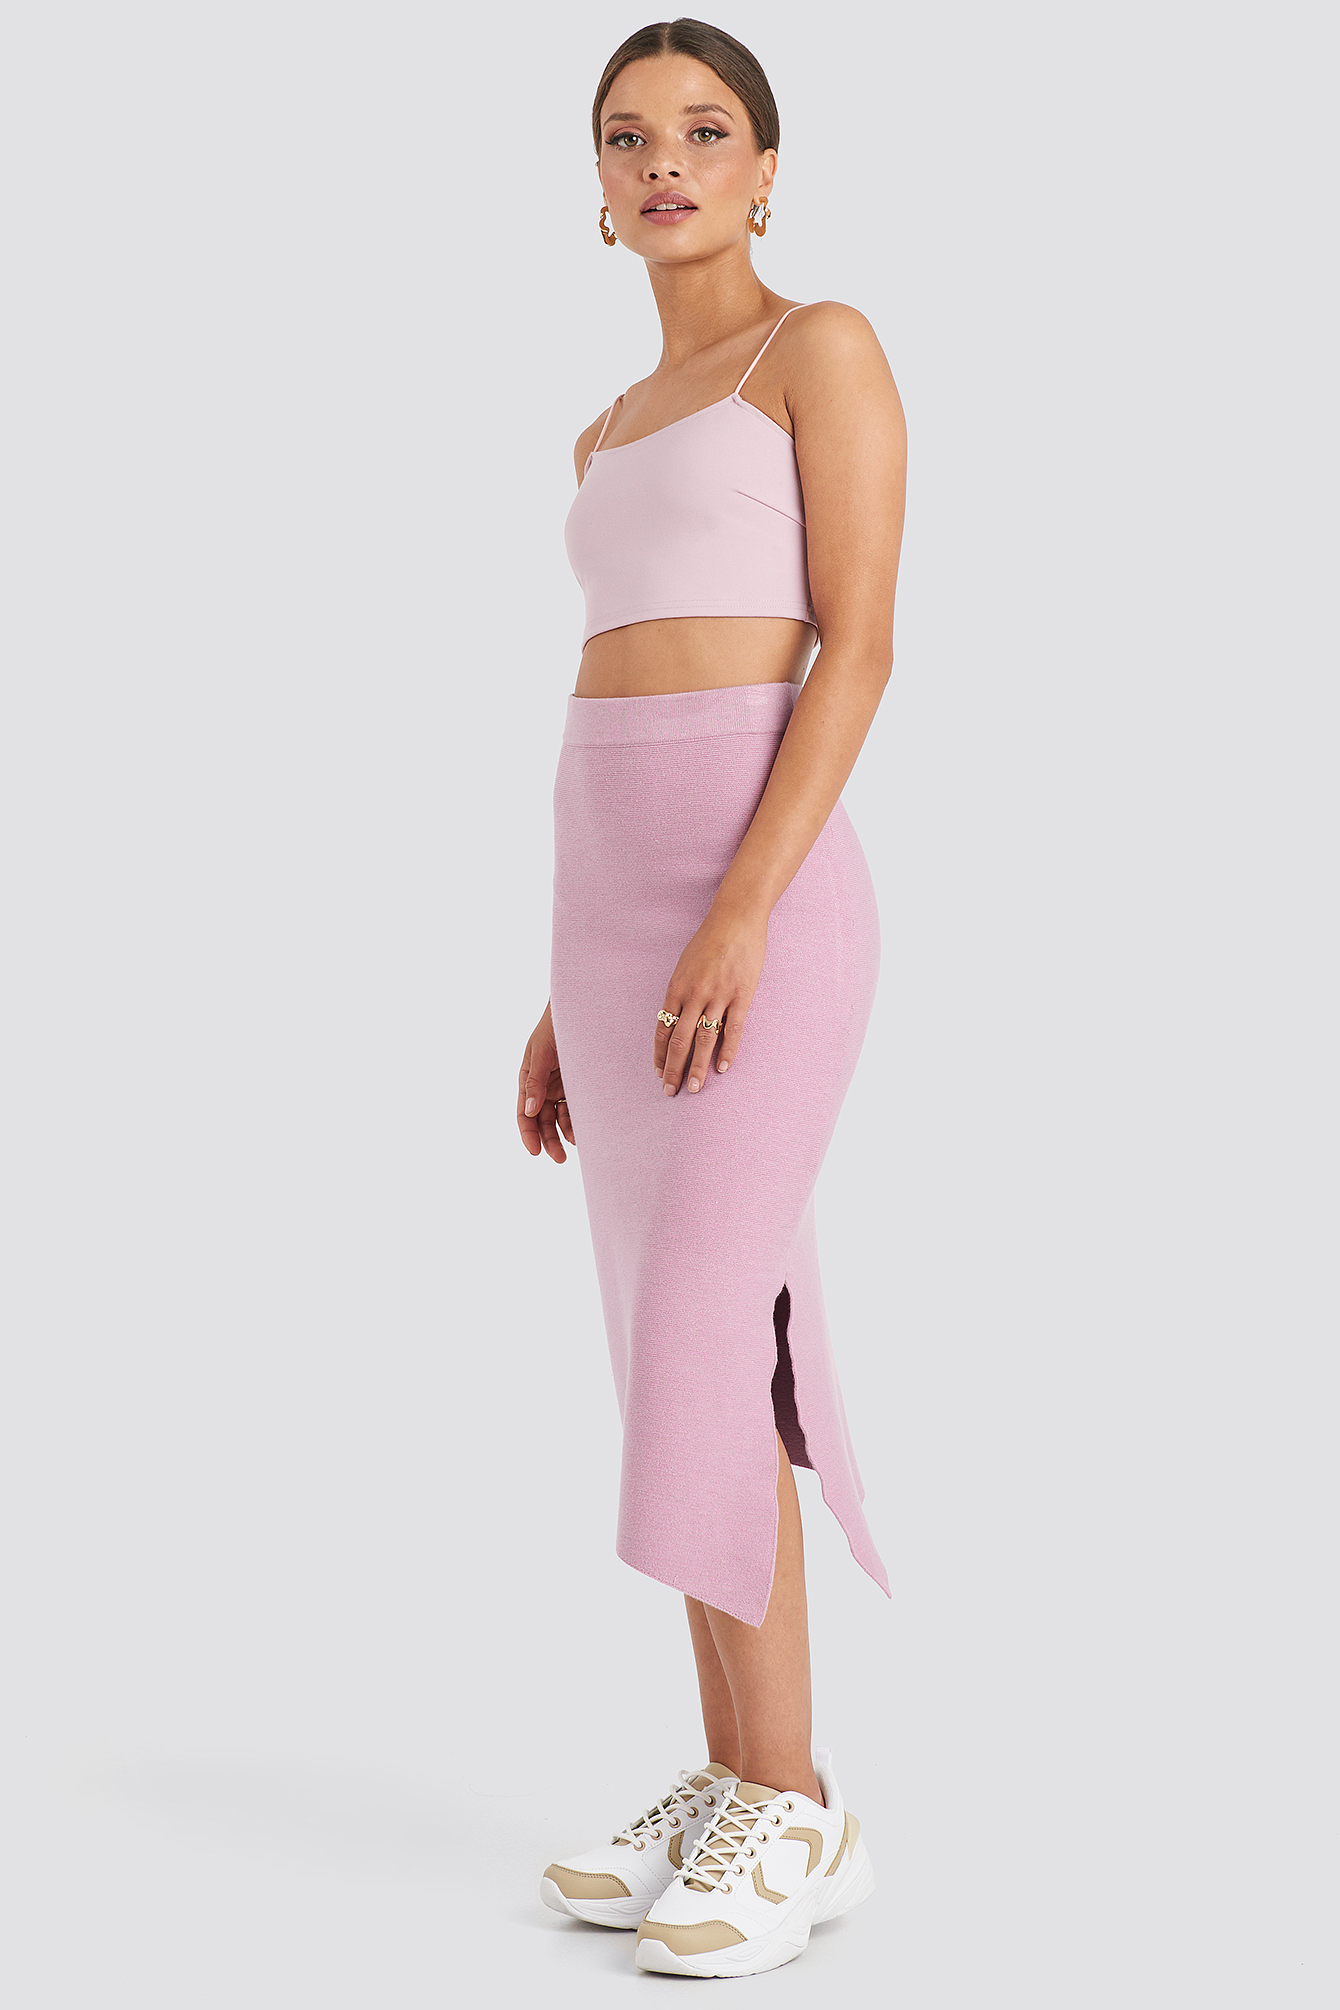 Emilie Briting X Na-kd Midi Knitted Skirt - Pink In Dusty Pink